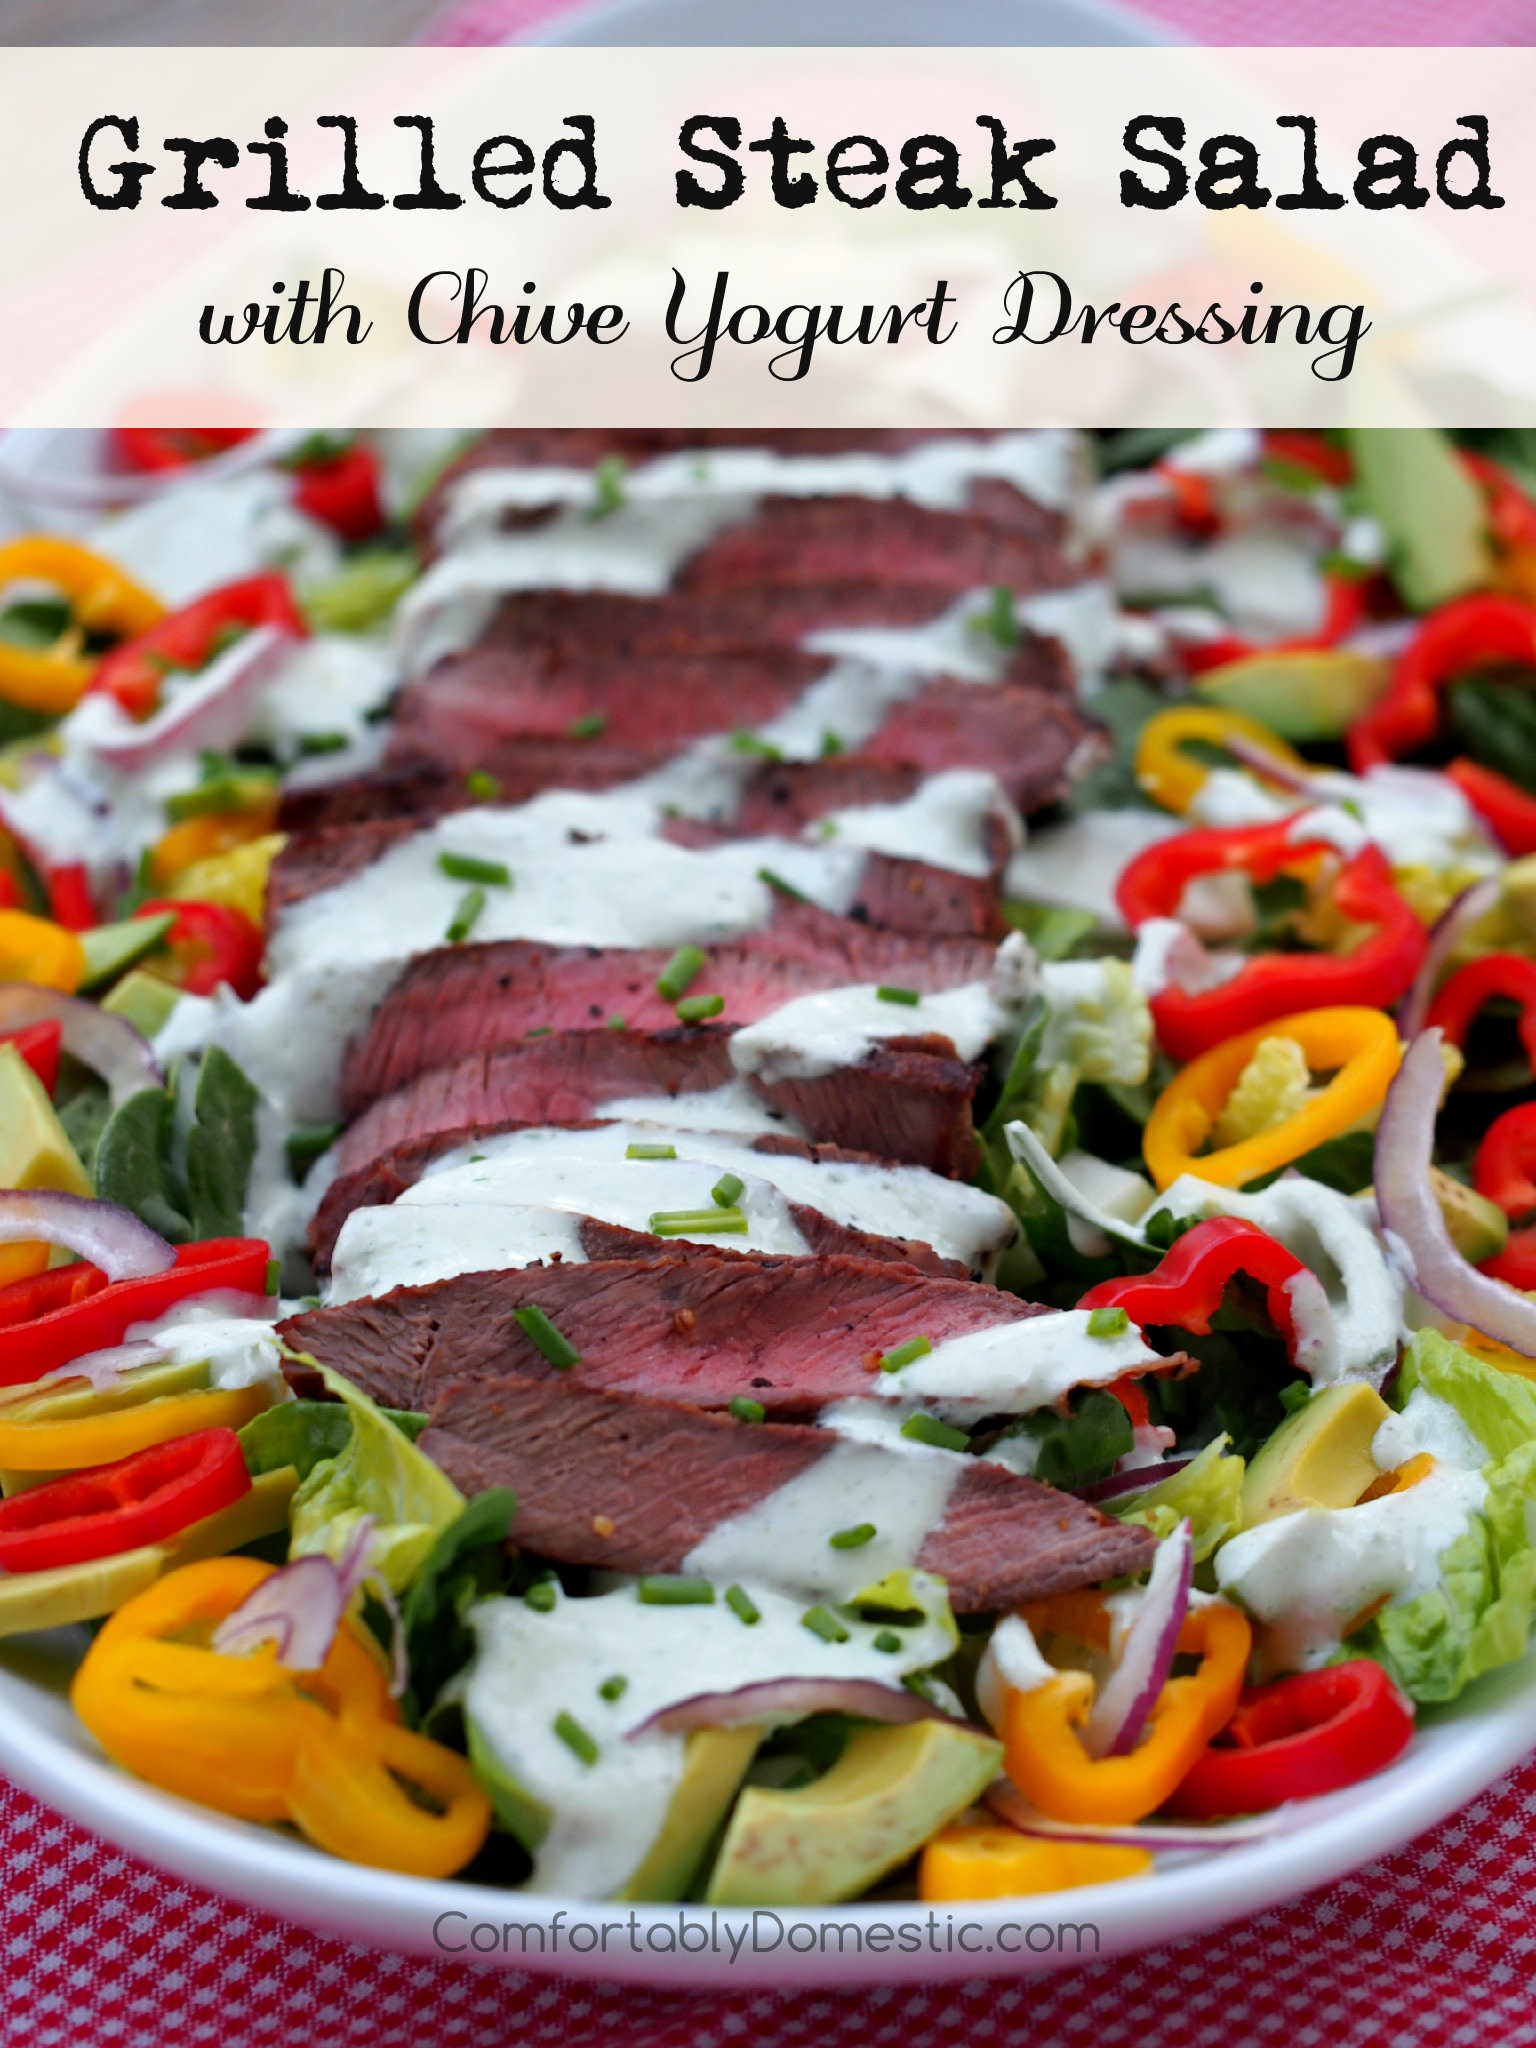 Grilled Steak Salad - Grilled steak sliced over colorful greens, sweet bell peppers, avocado, and thinly shaved red onion Drizzled with healthy, flavorful chive yogurt dressing. | ComfortablyDomestic.com